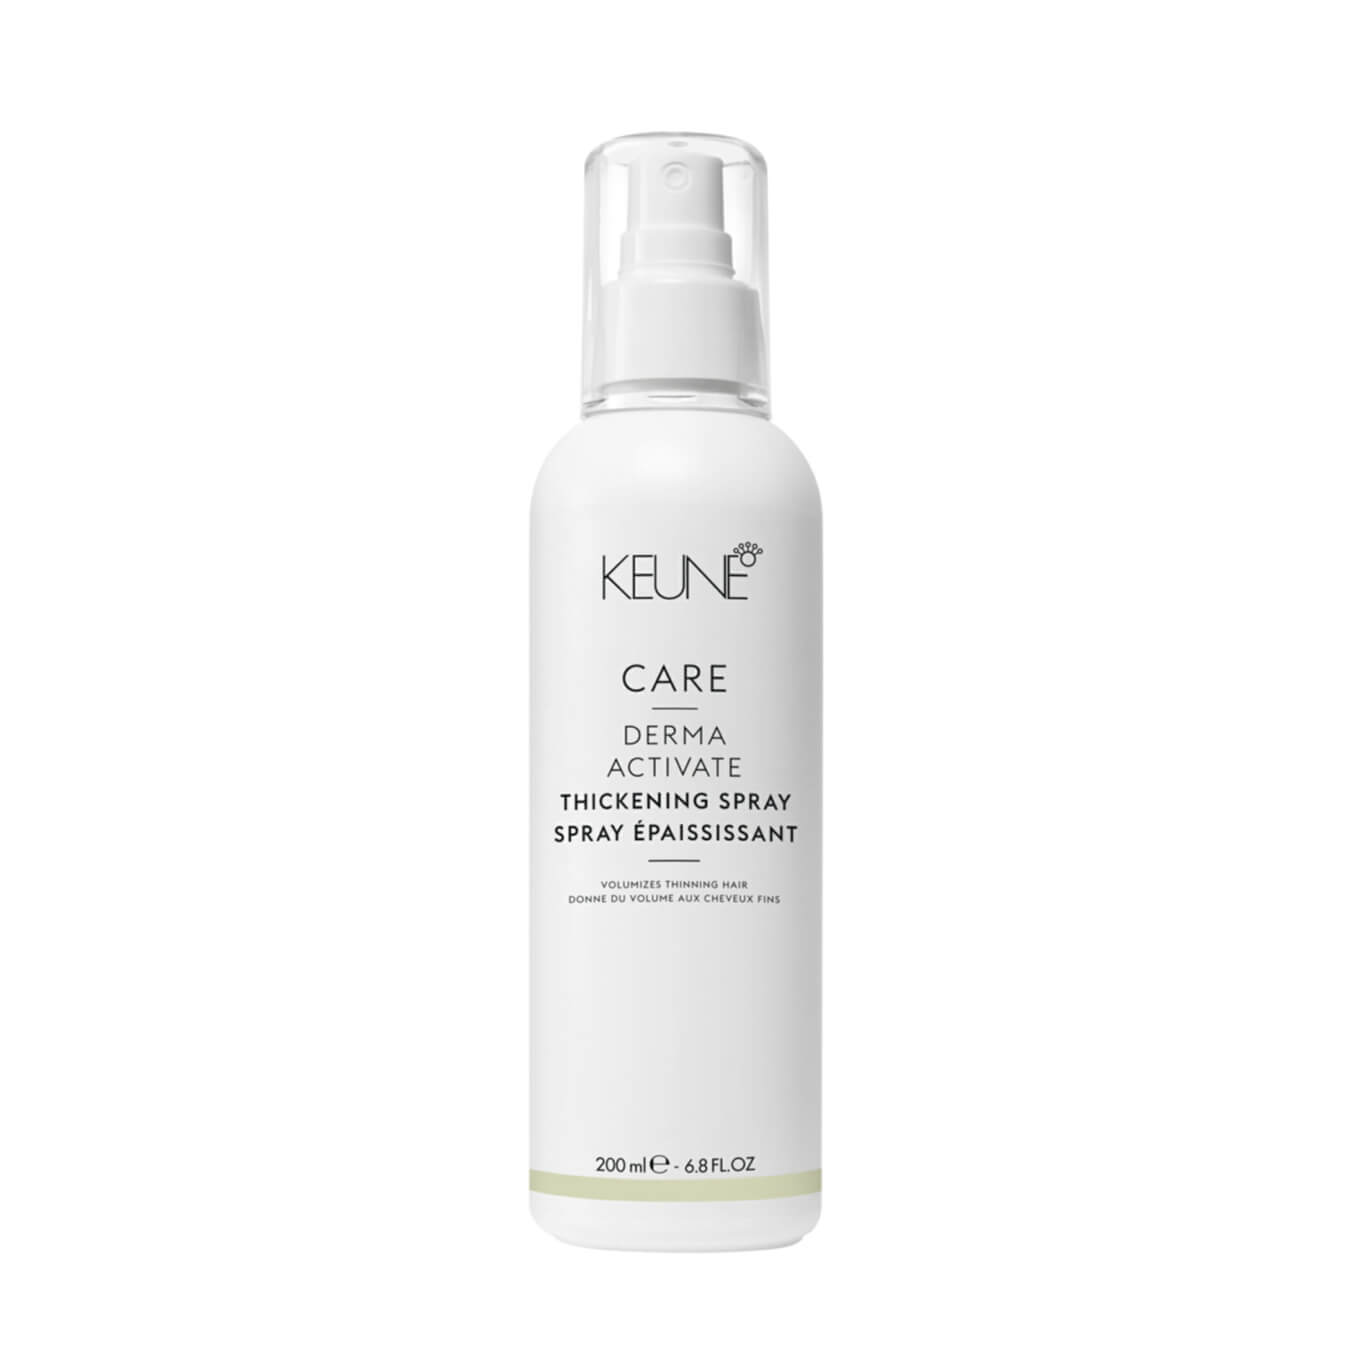 Koop Keune Care Derma Activate Thickening Spray 200ml